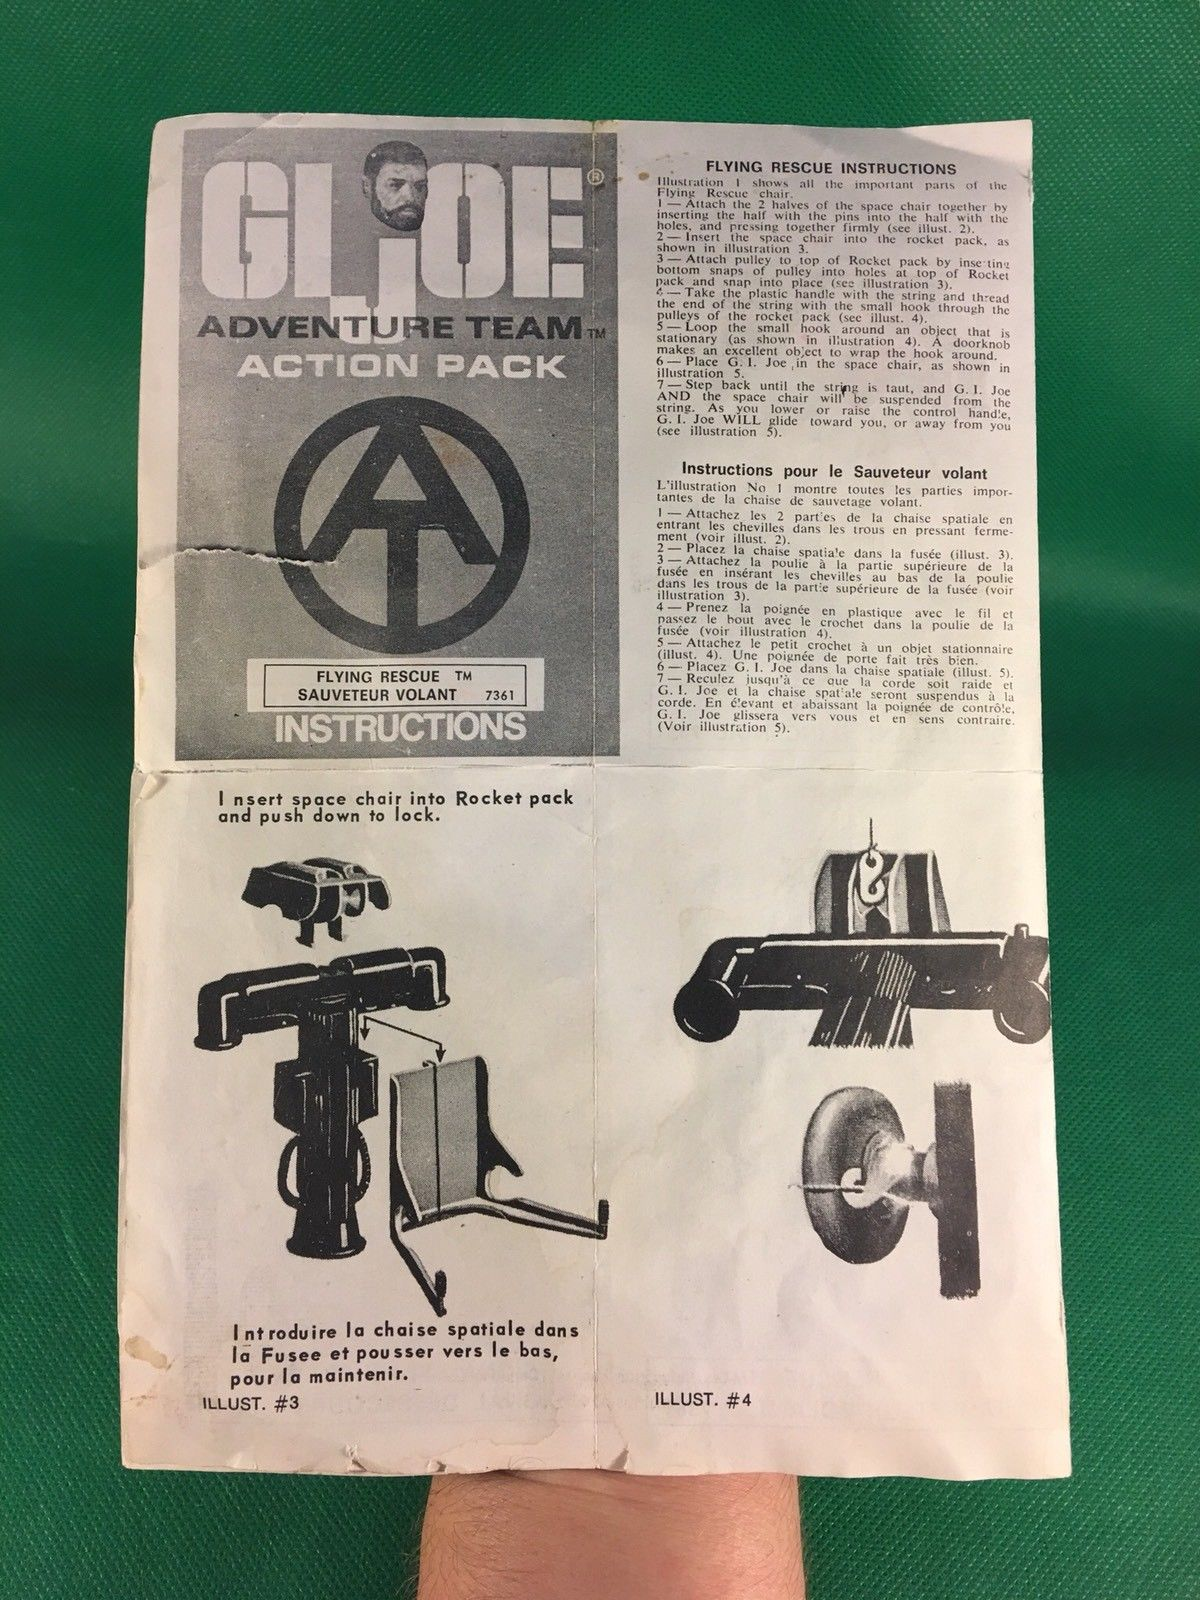 VINTAGE 1964 GI JOE -- ADVENTURE TEAM FLYING RESCUE INSTRUCTIONS CANADA VERSION